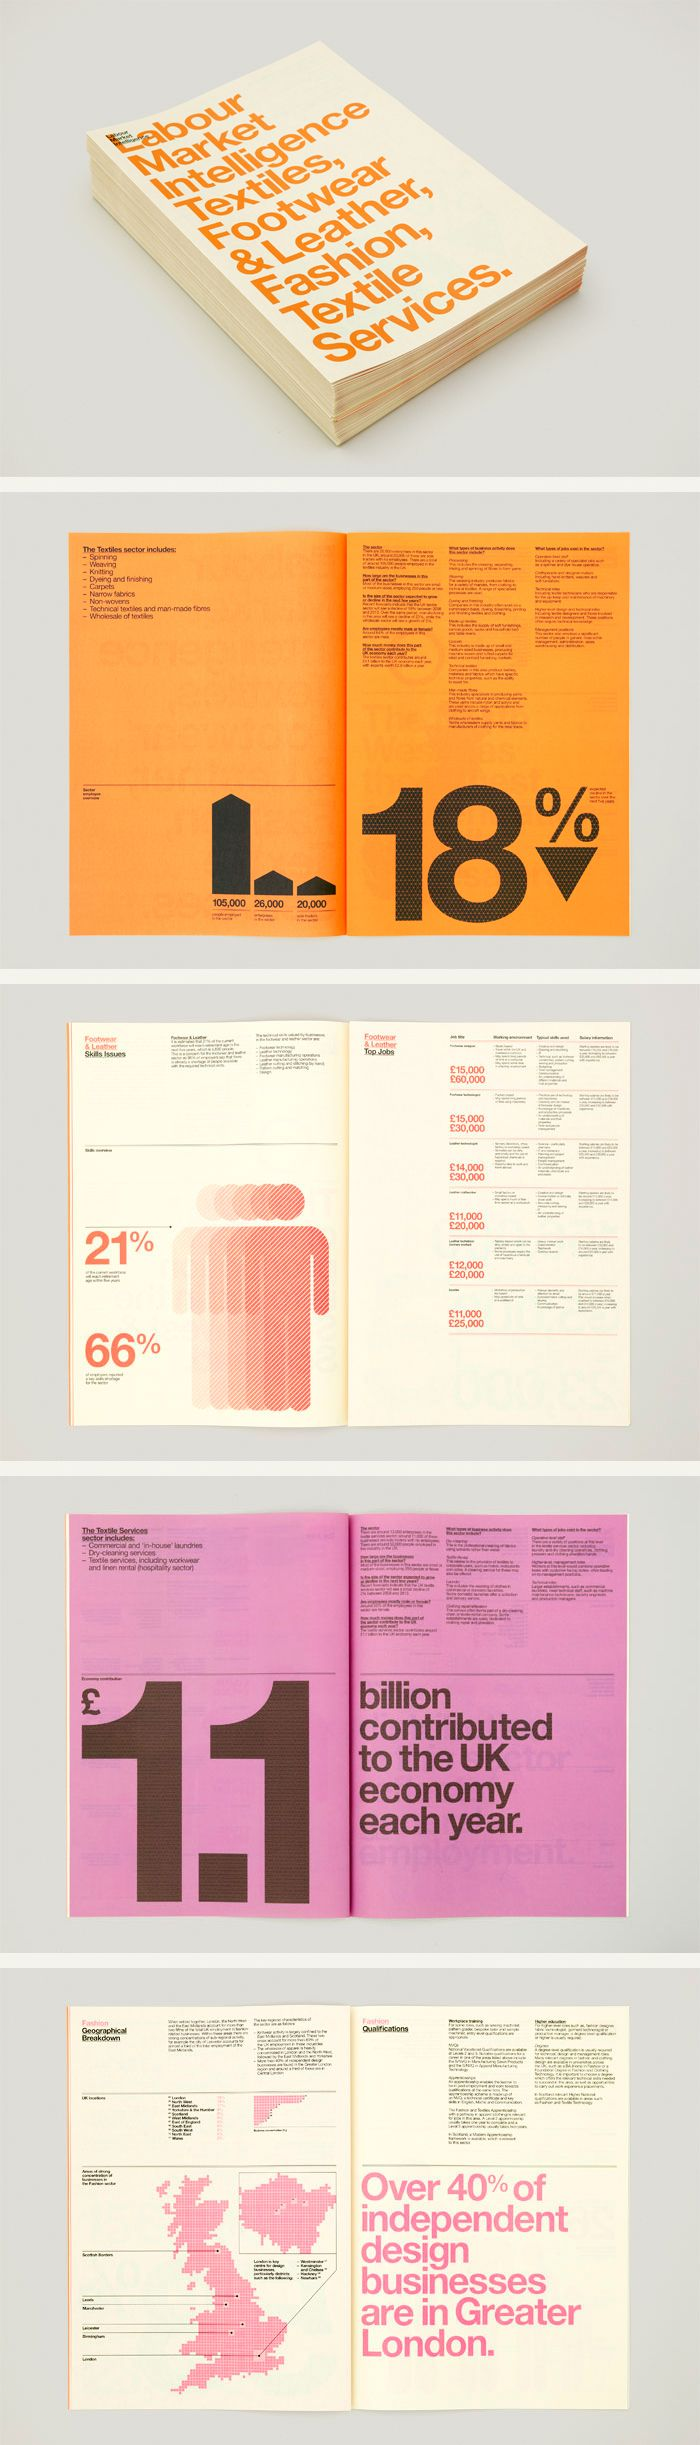 Labour Market Intelligence, statistics and typography